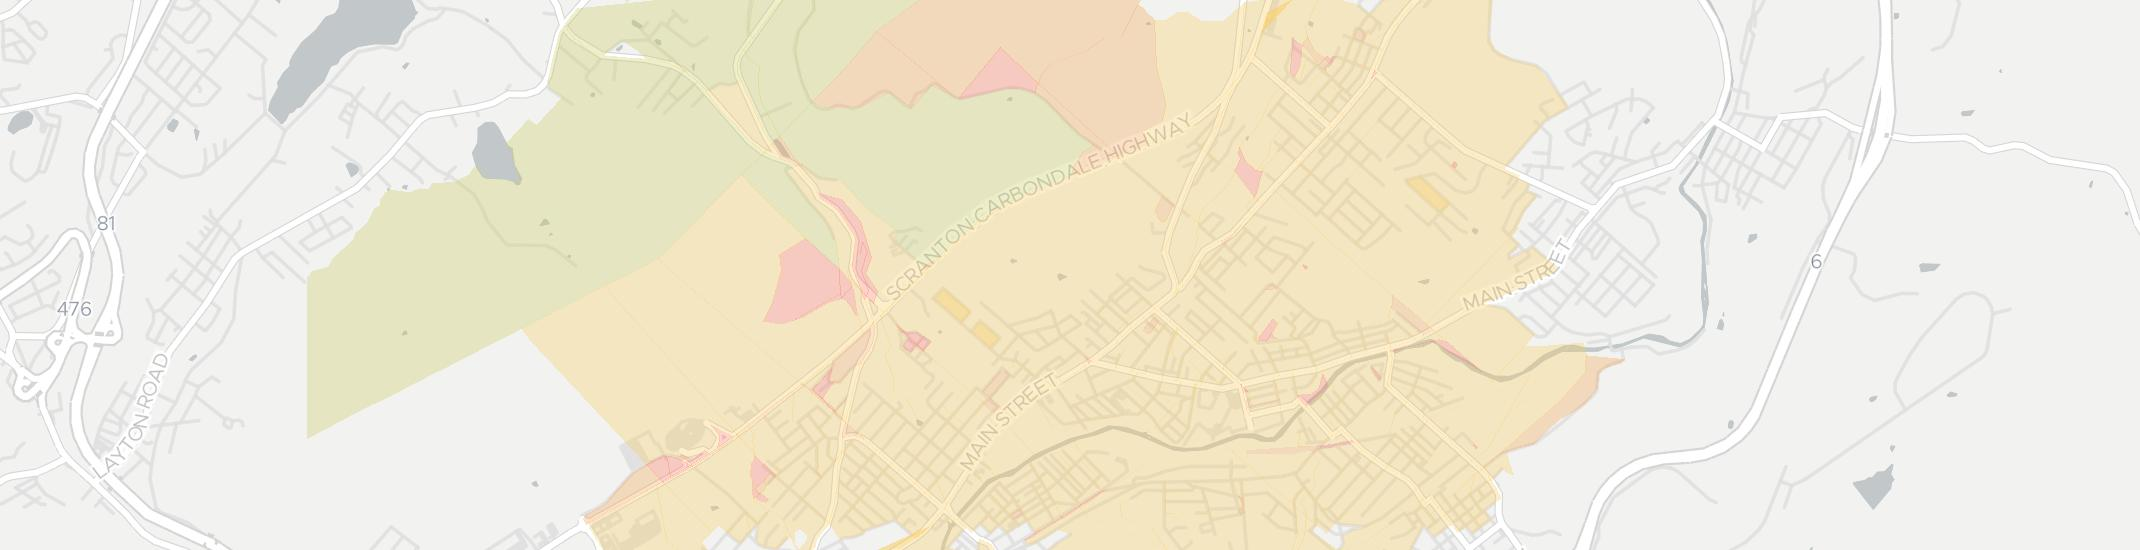 Blakely Internet Competition Map. Click for interactive map.